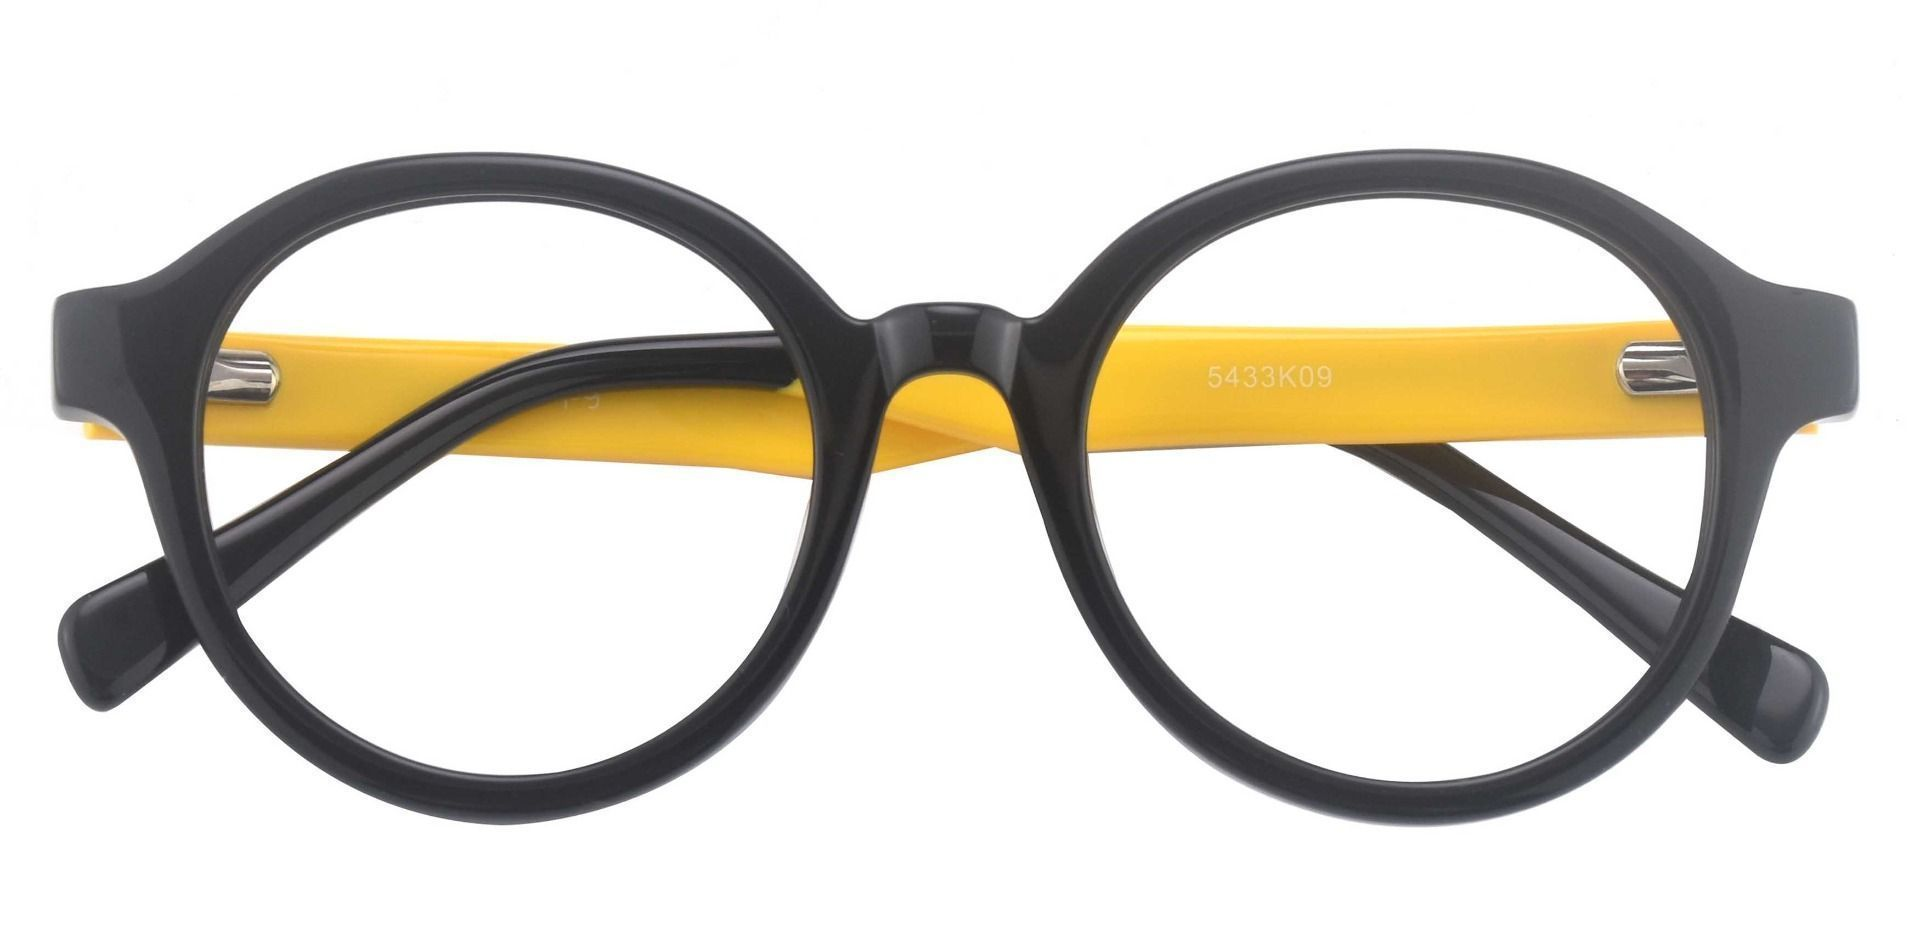 Steel City Round Reading Glasses - The Frame Is Black And Gold